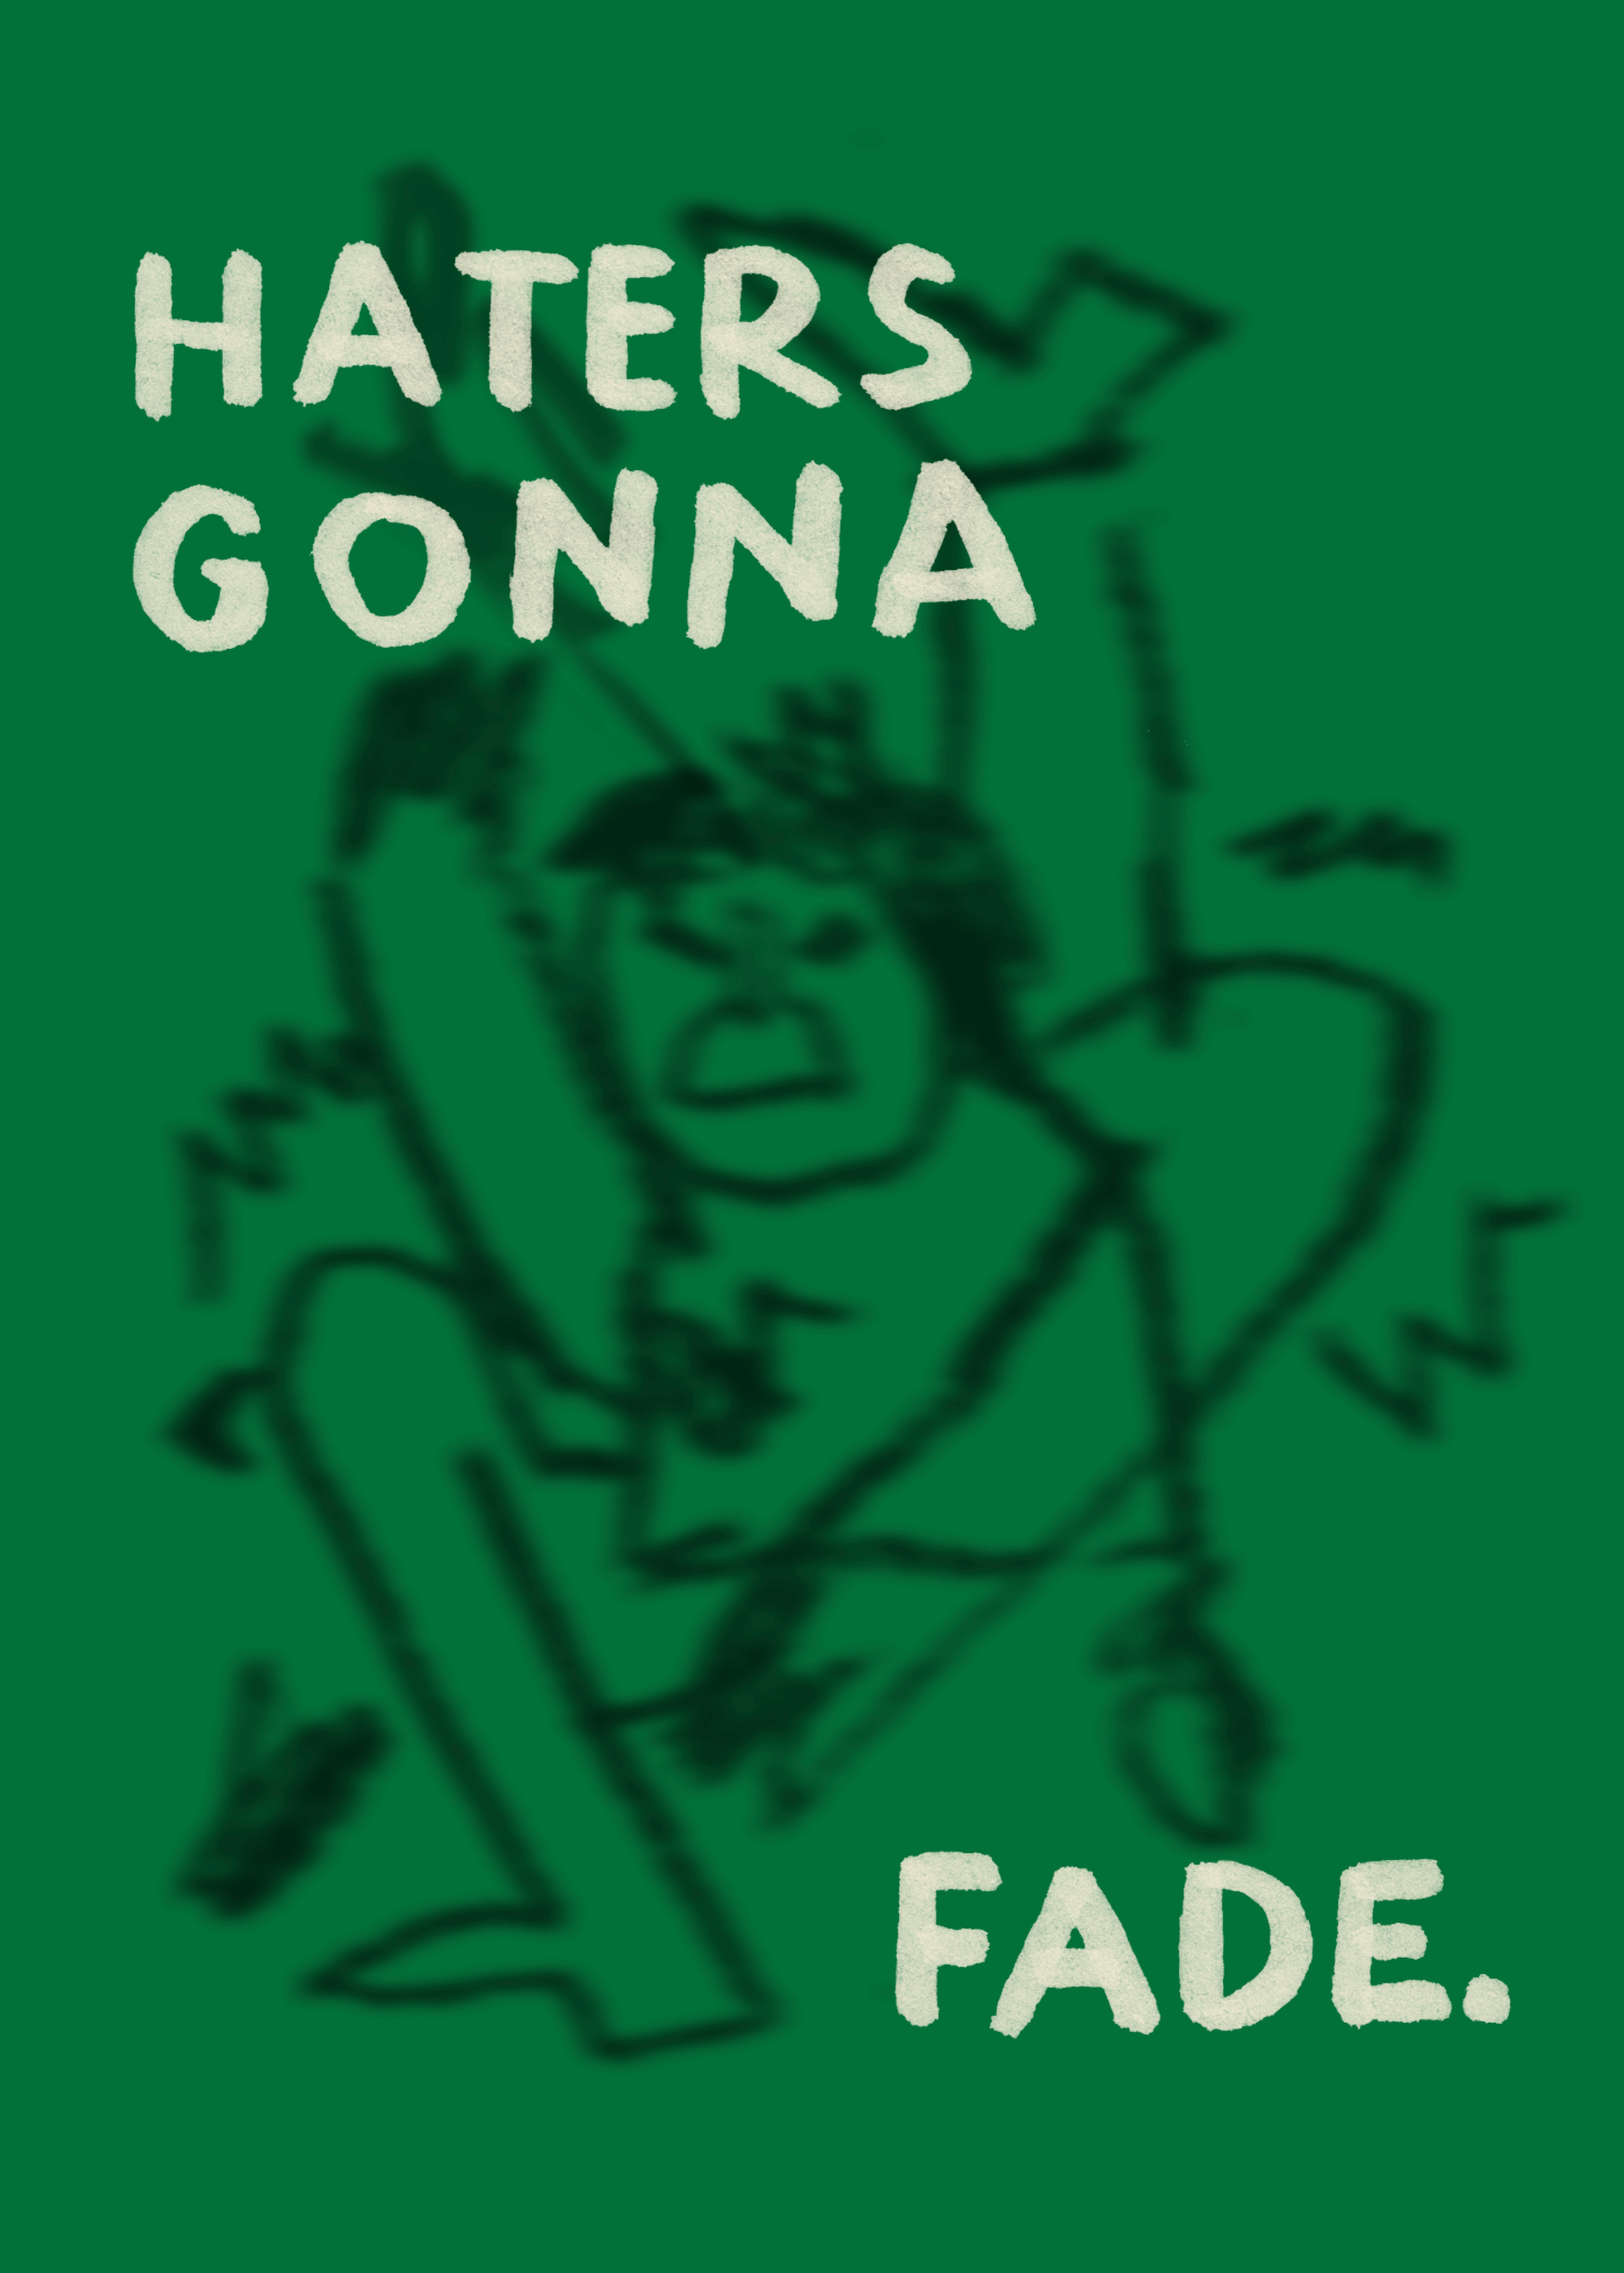 Haters Gonna Fade (series 2/2) main image